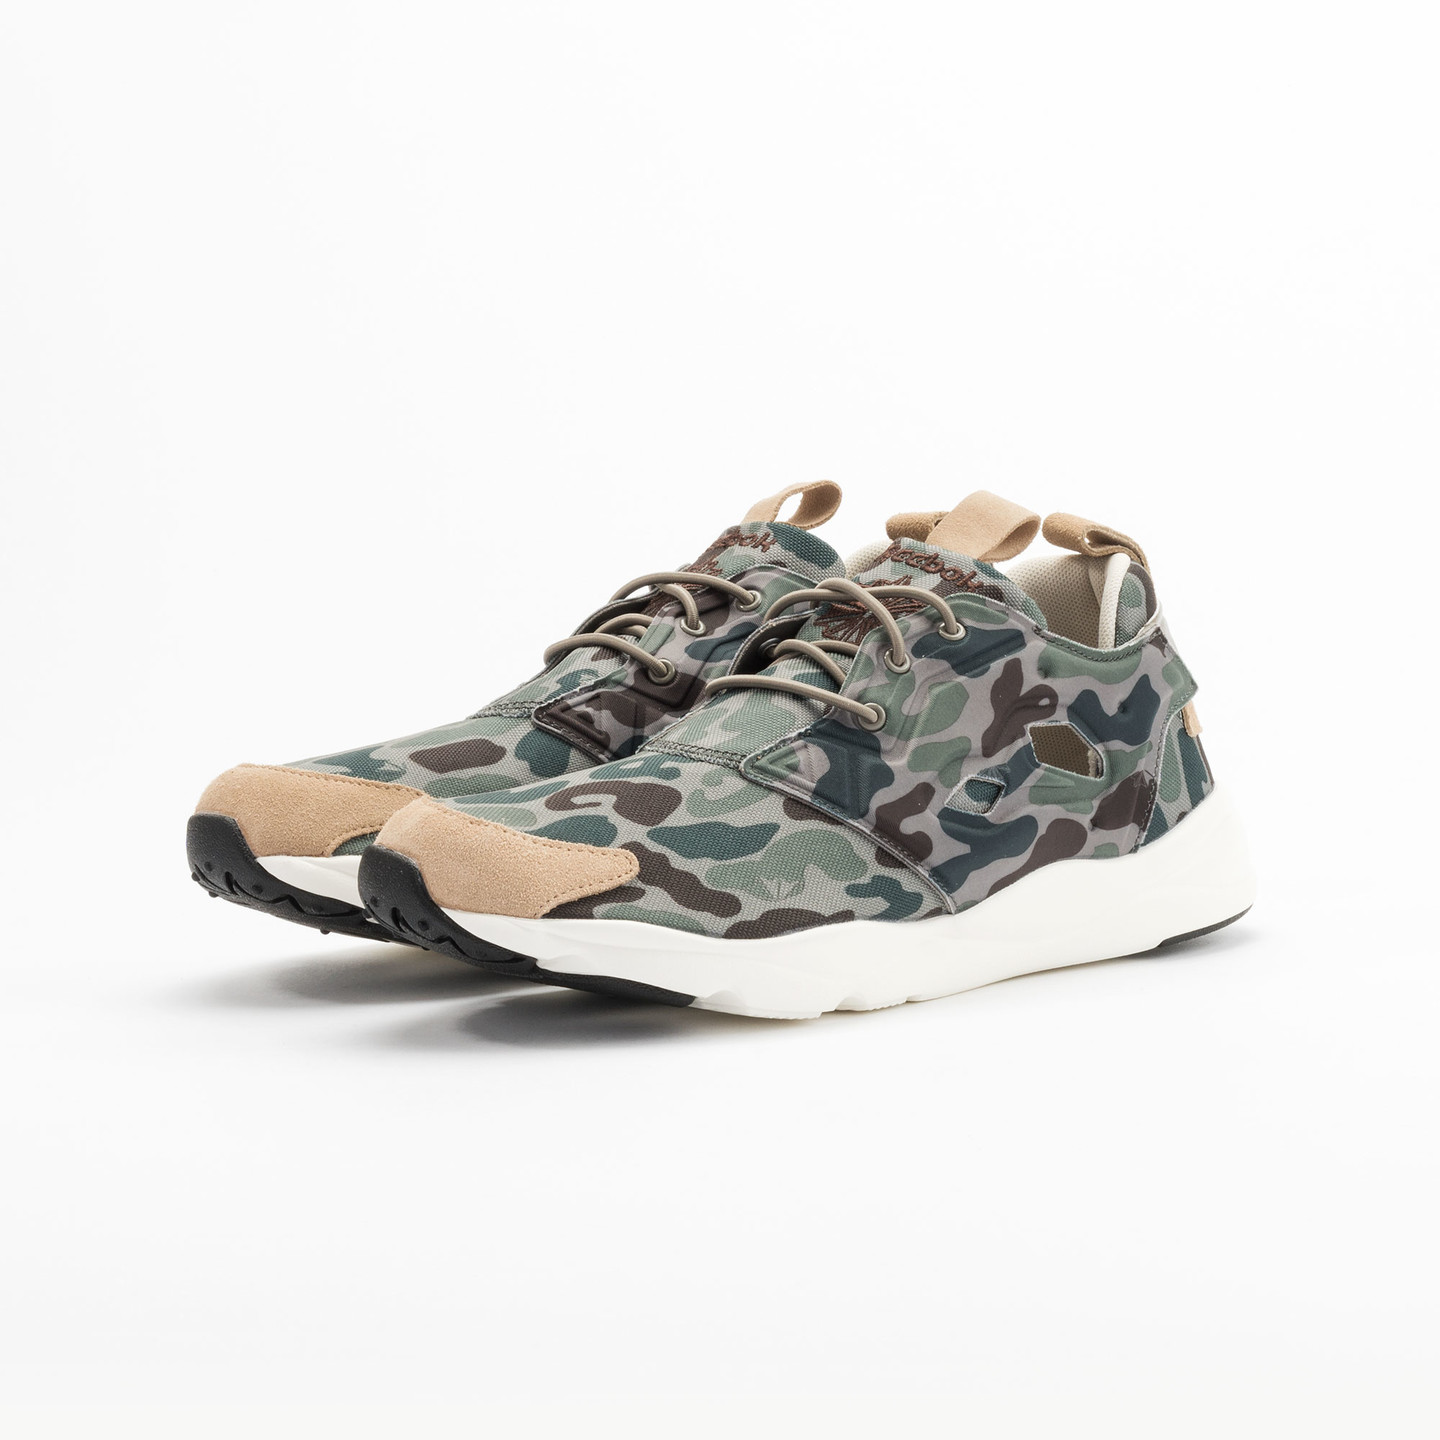 Reebok Furylite Camo Cement / Silvery Green / Sage V67089-45.5